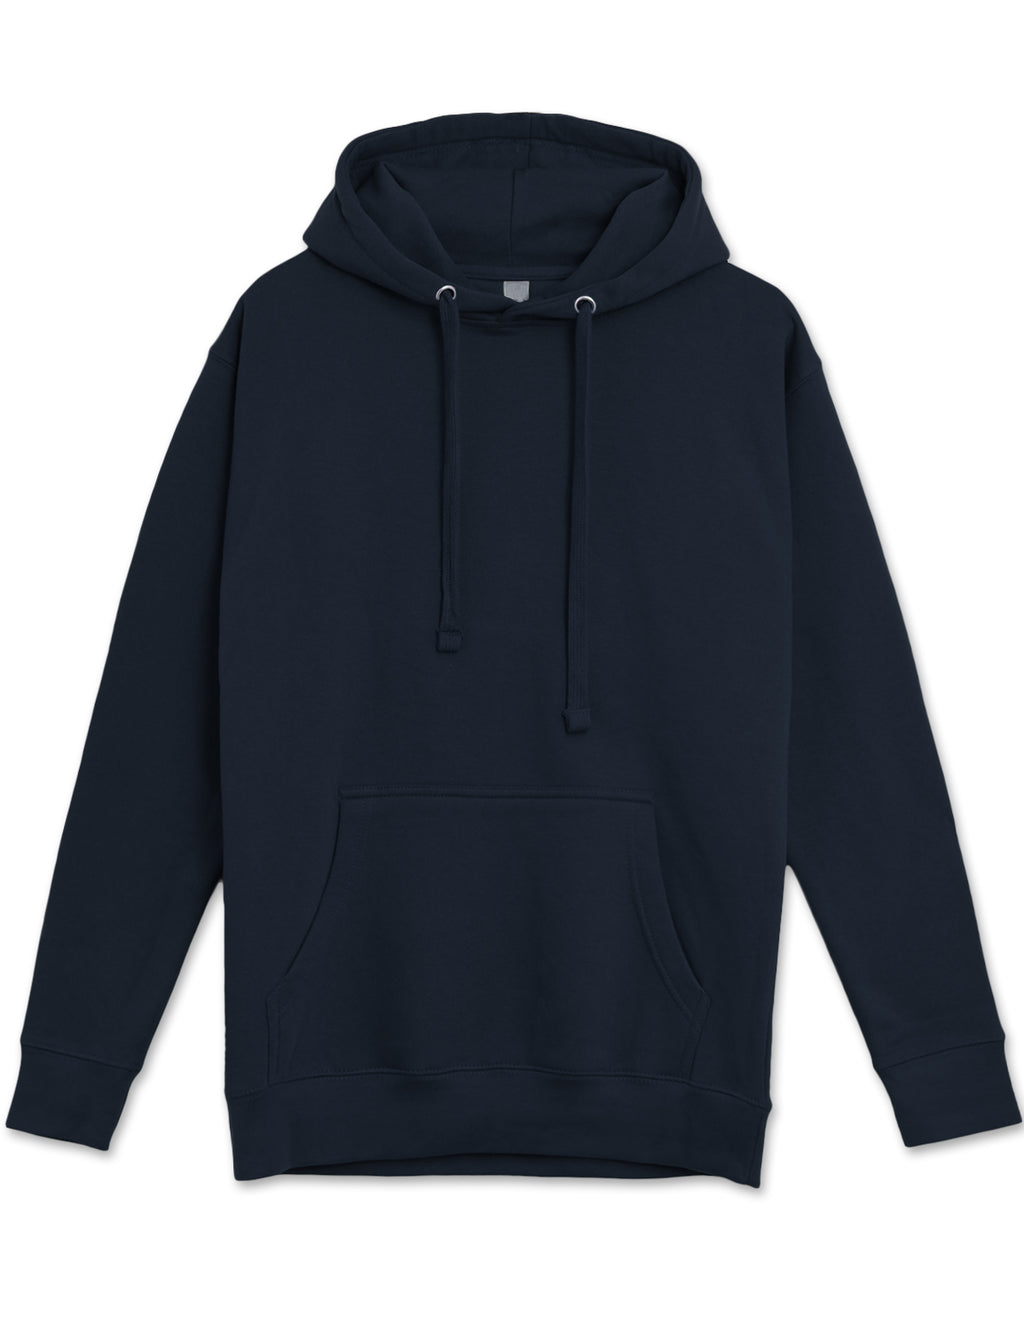 Slim Fit Fleece Hoodies (17 Colors)